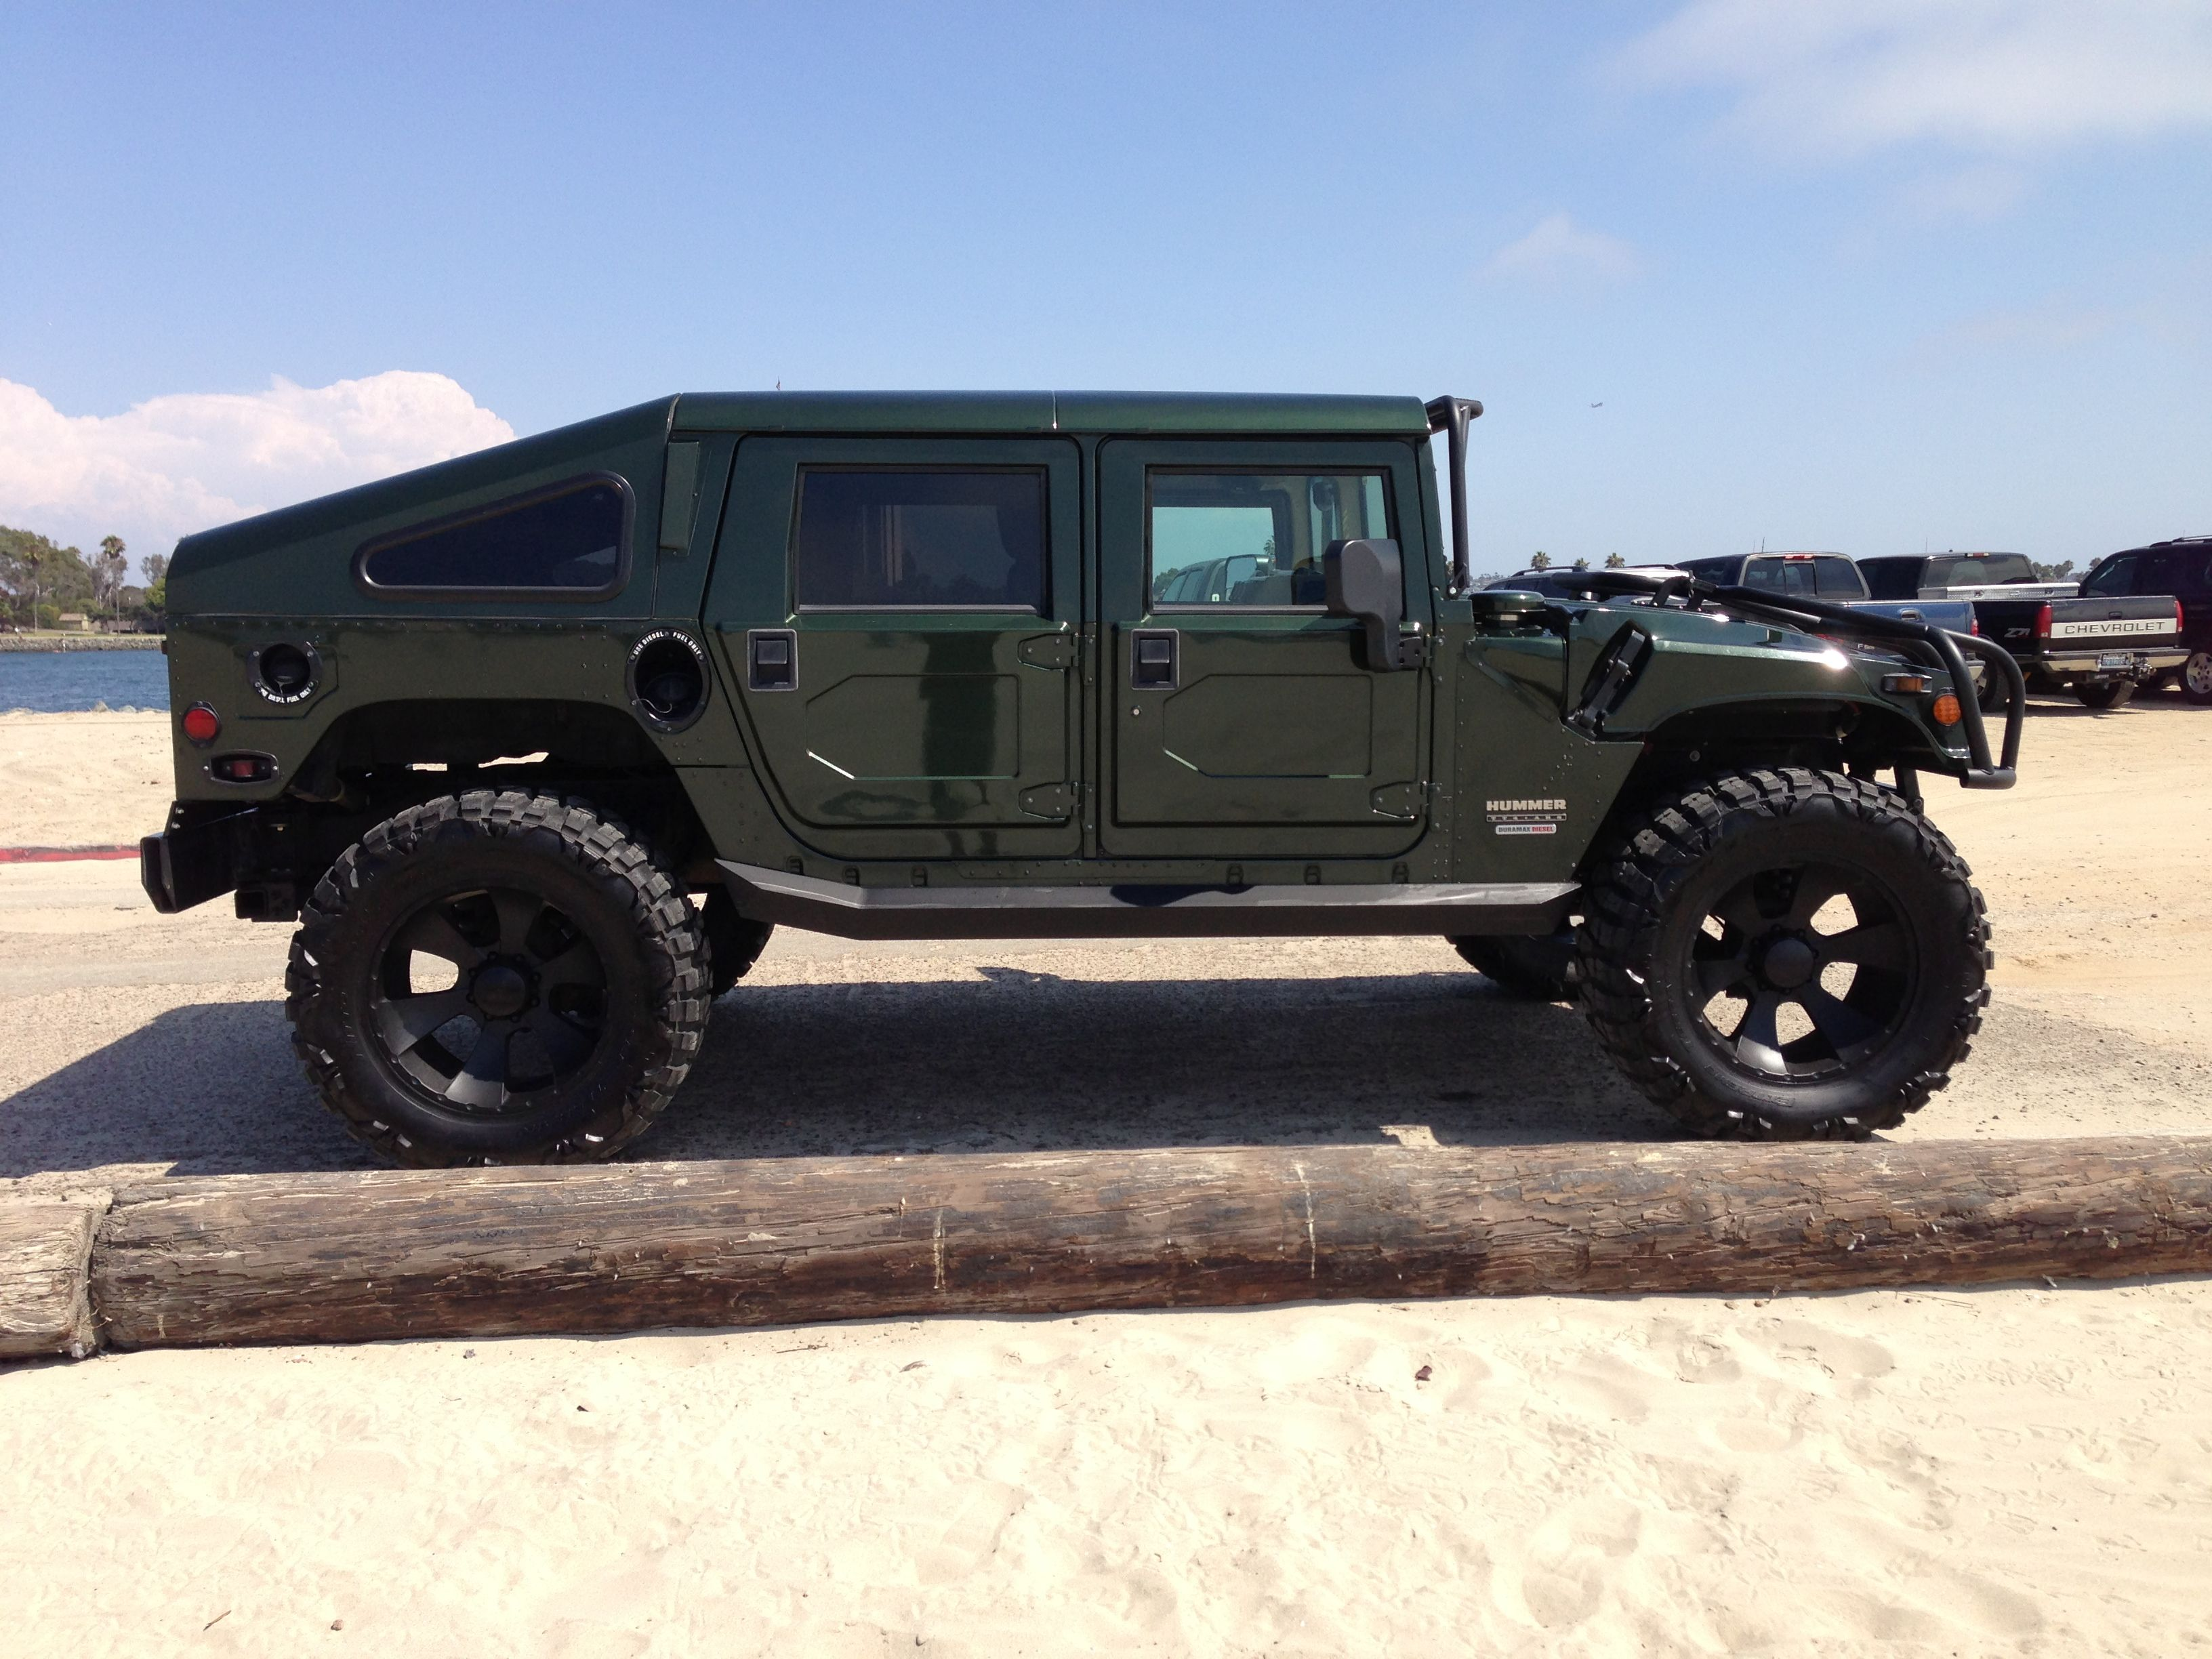 Brutal Hummer H1. The colossal power of a car-military